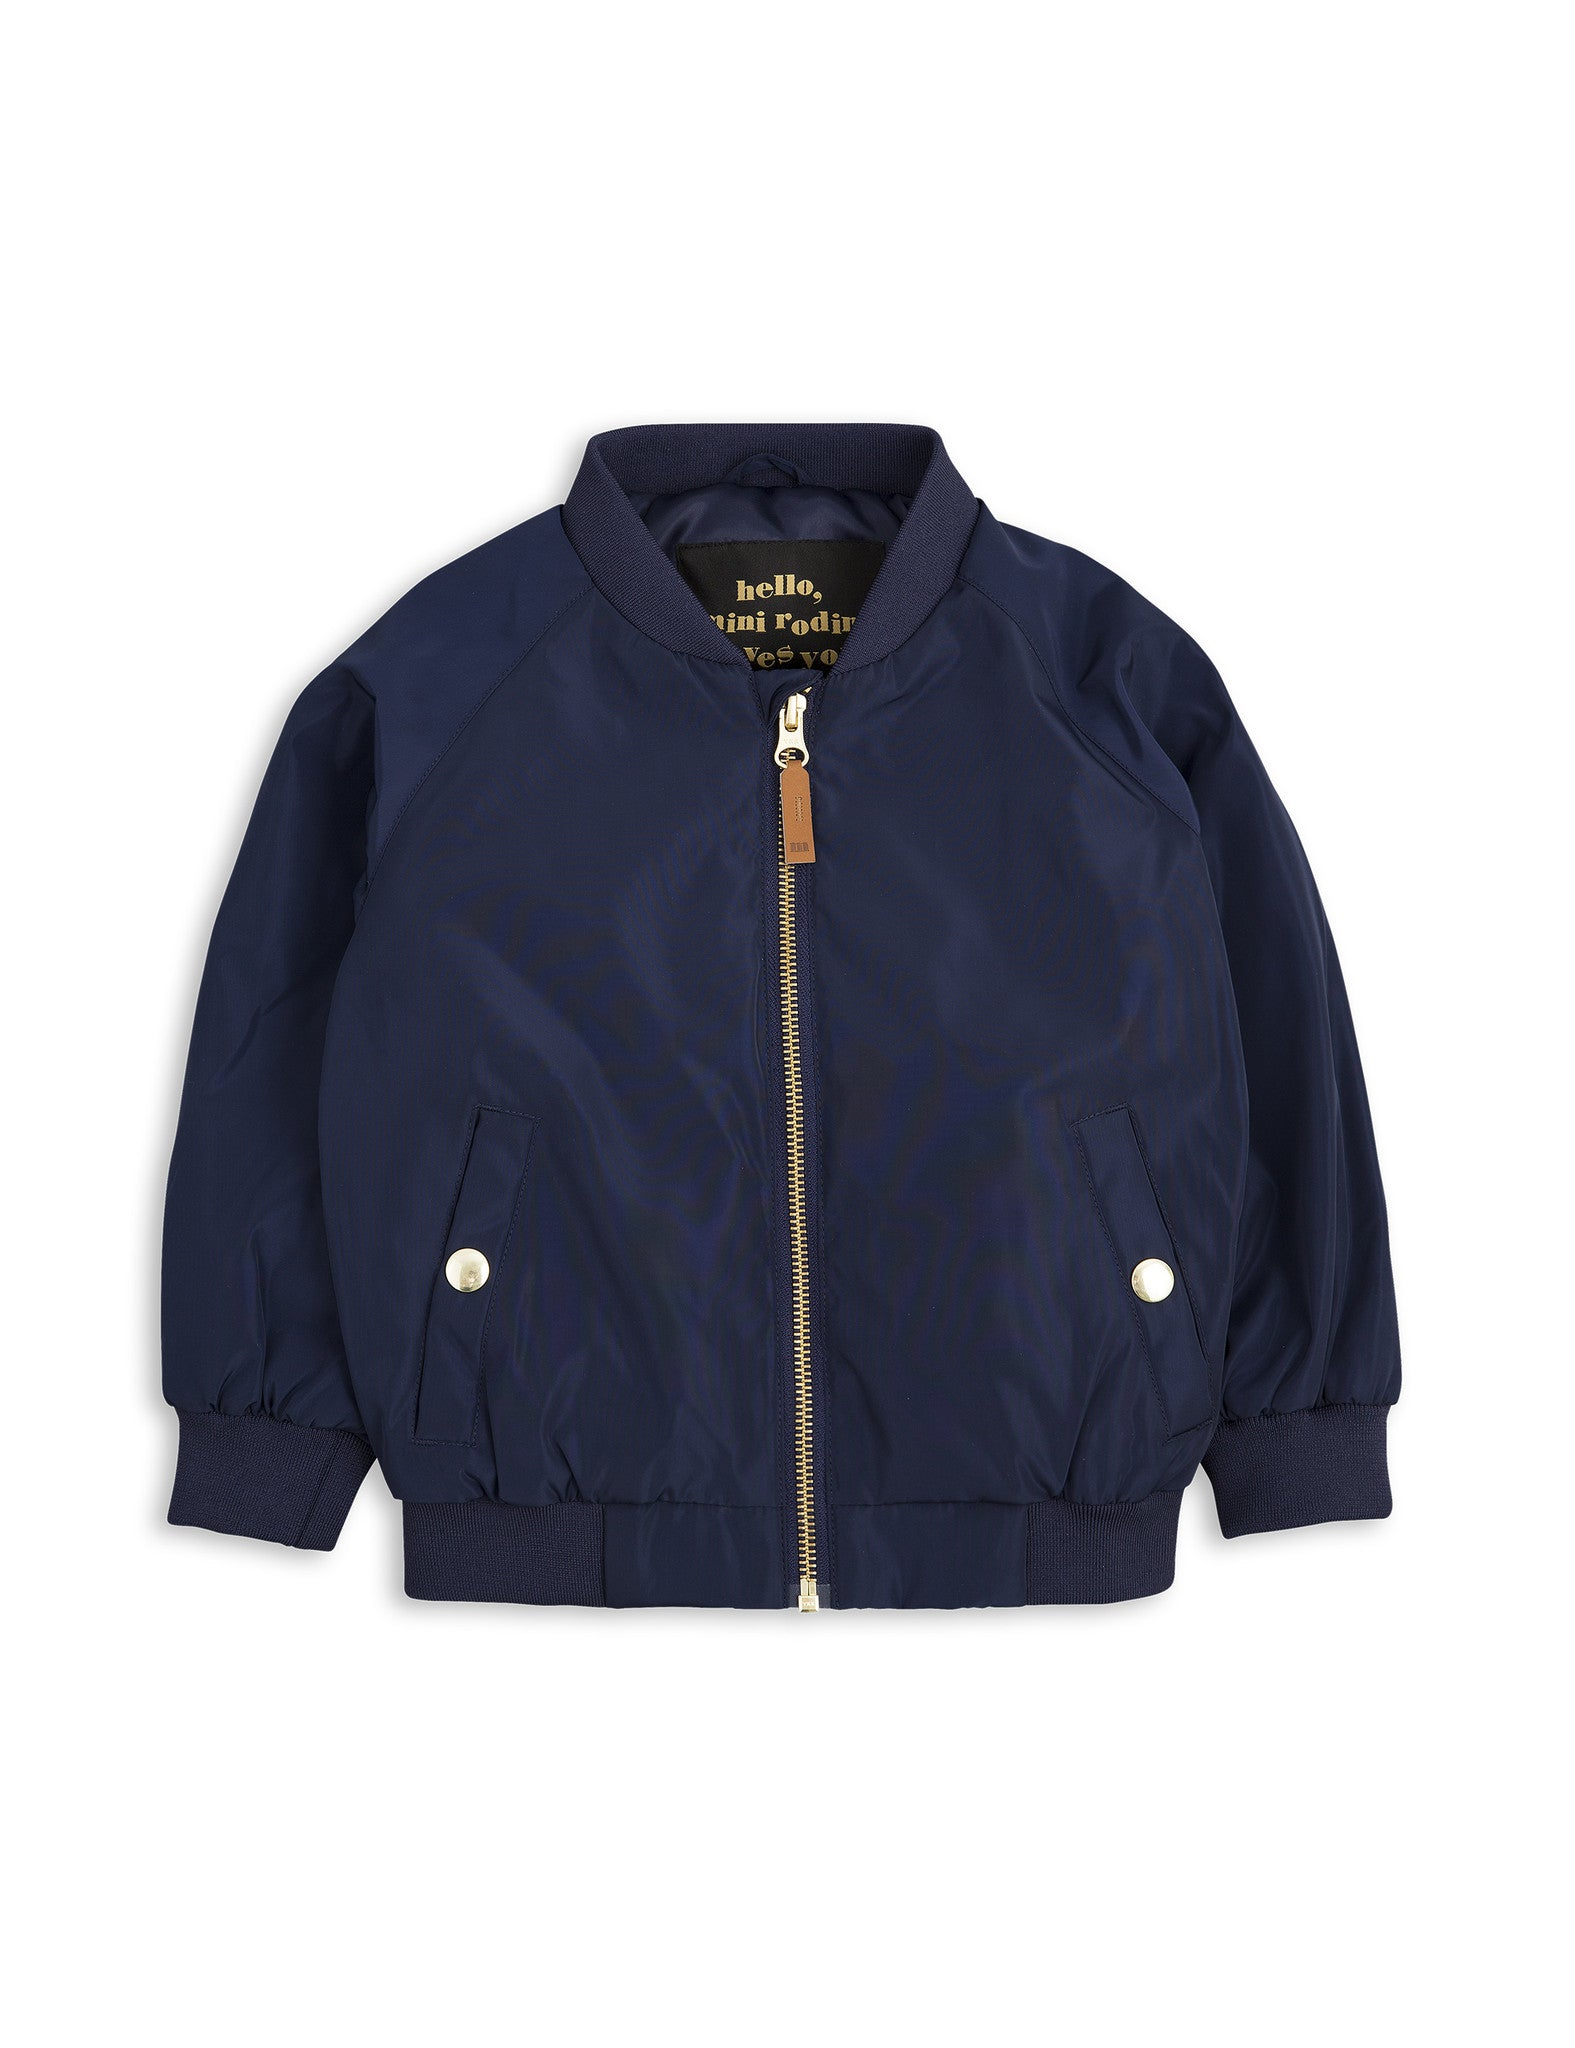 Mini Rodini | Navy Frog Baseball Jacket | The Mini Life